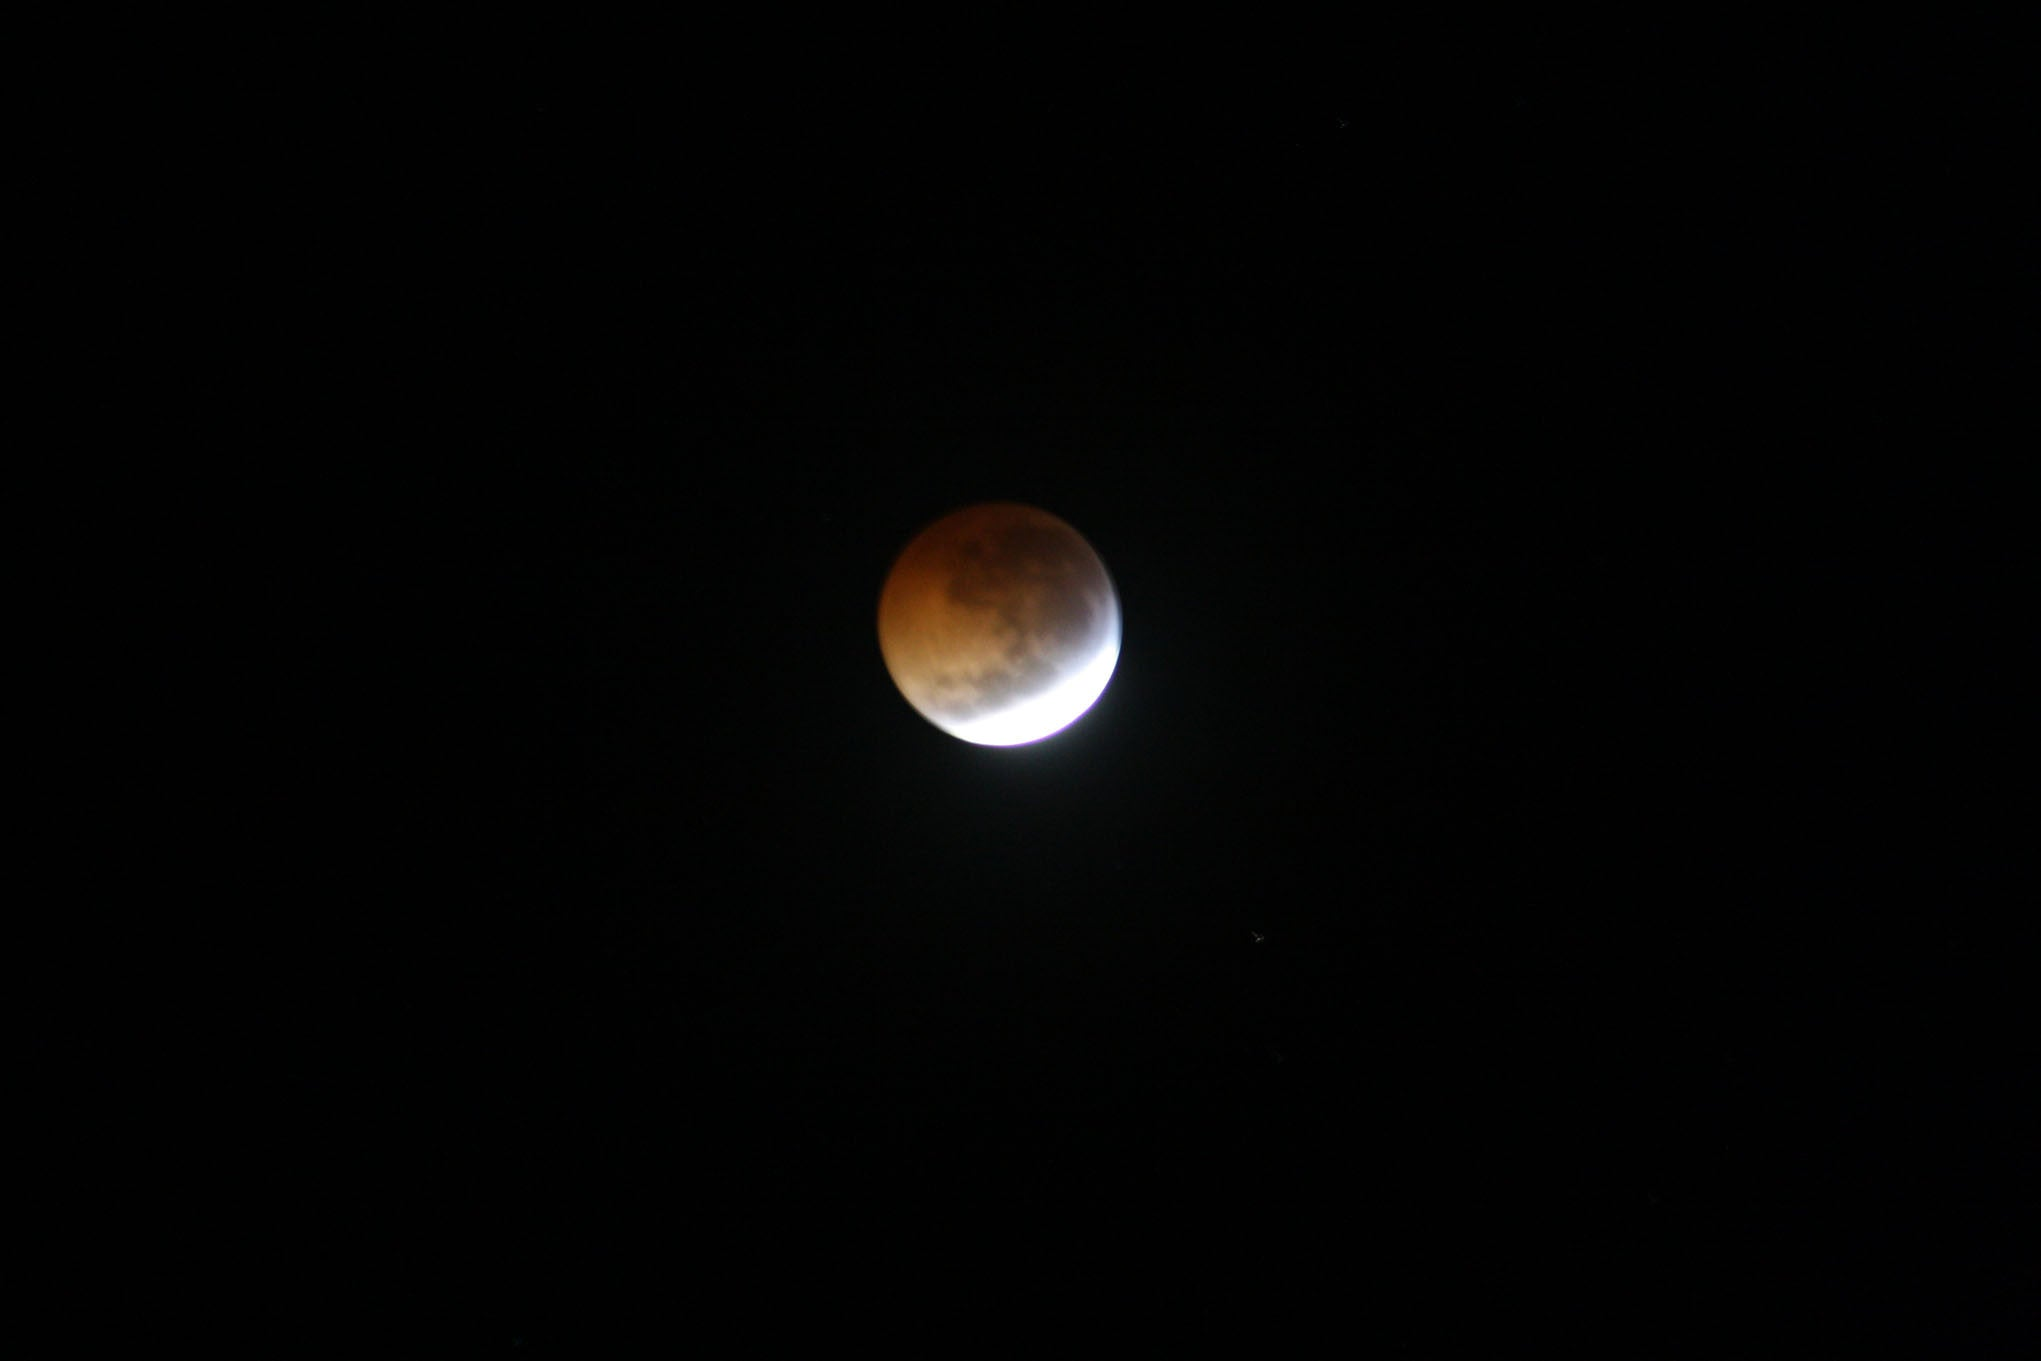 eclipse of the moon Mustique